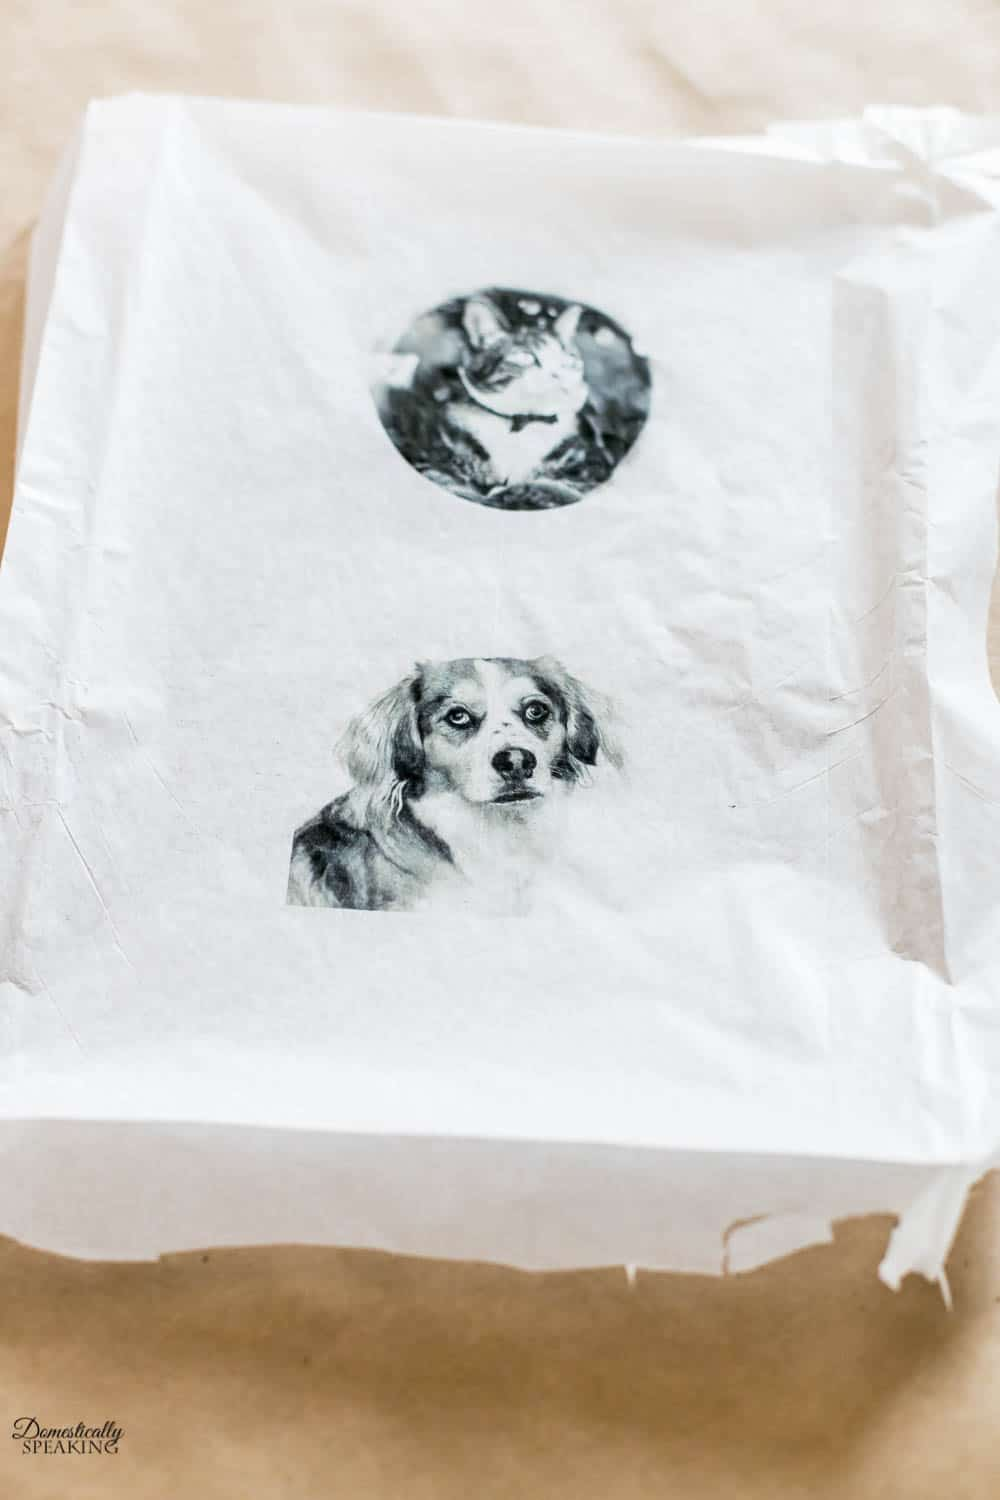 Dog and Cat photos printed on tissue paper.